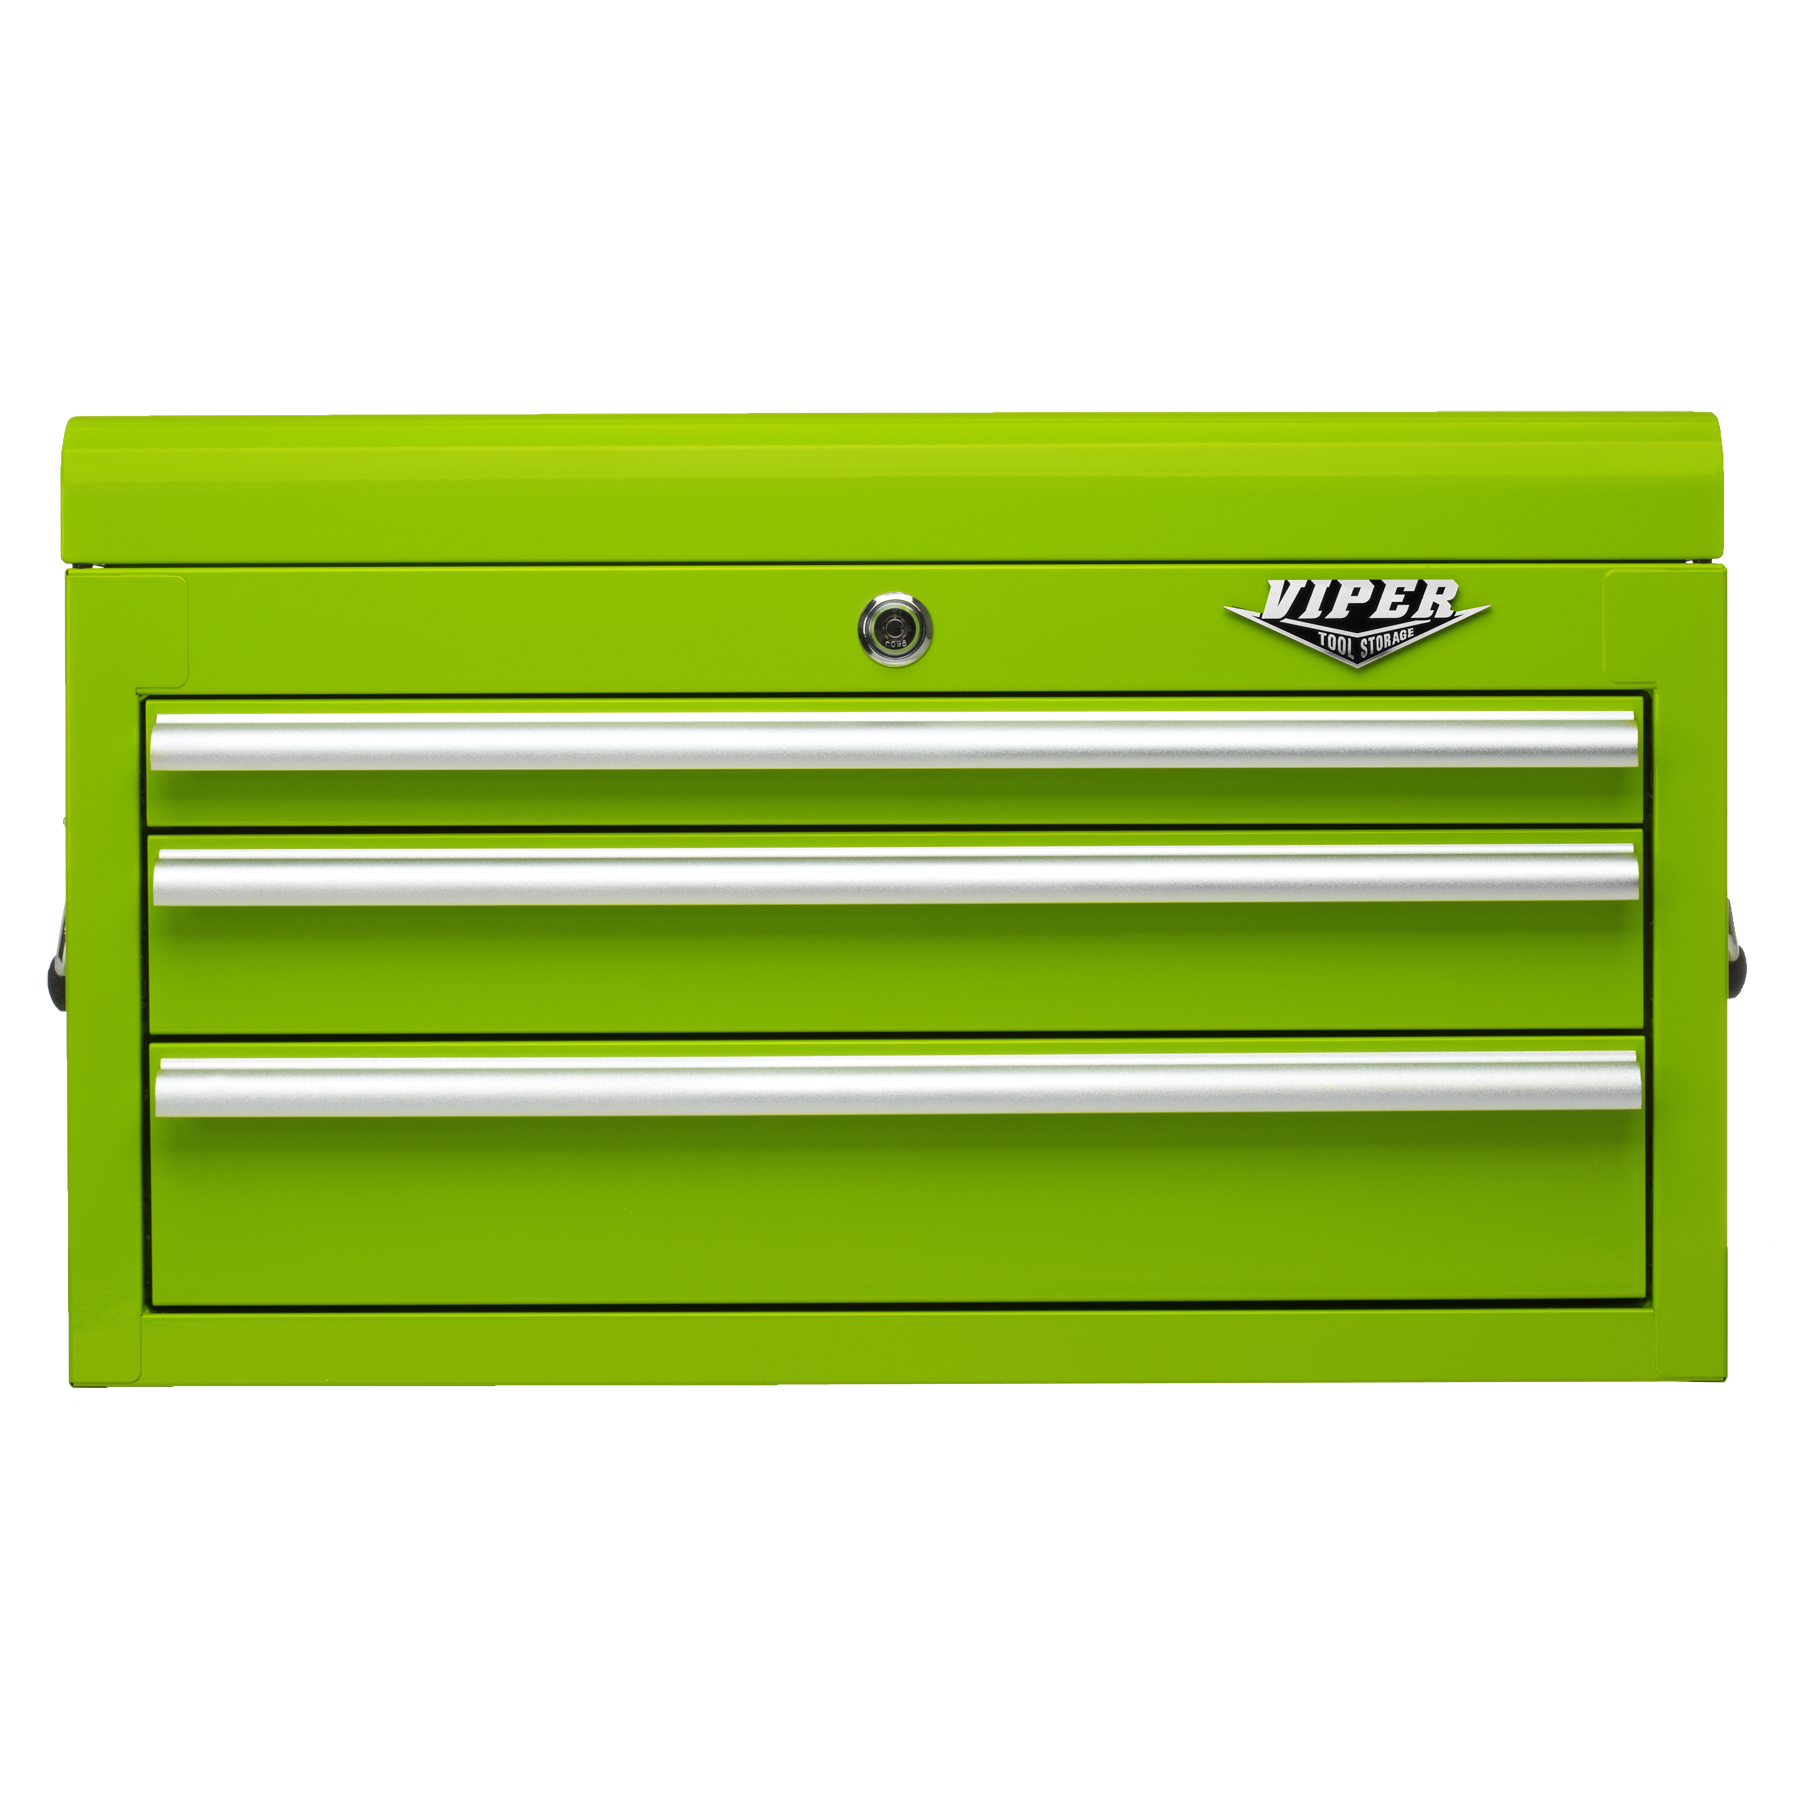 Viper Tool Storage 26-inch 3 Drawer 18G Steel Top Chest  Lime